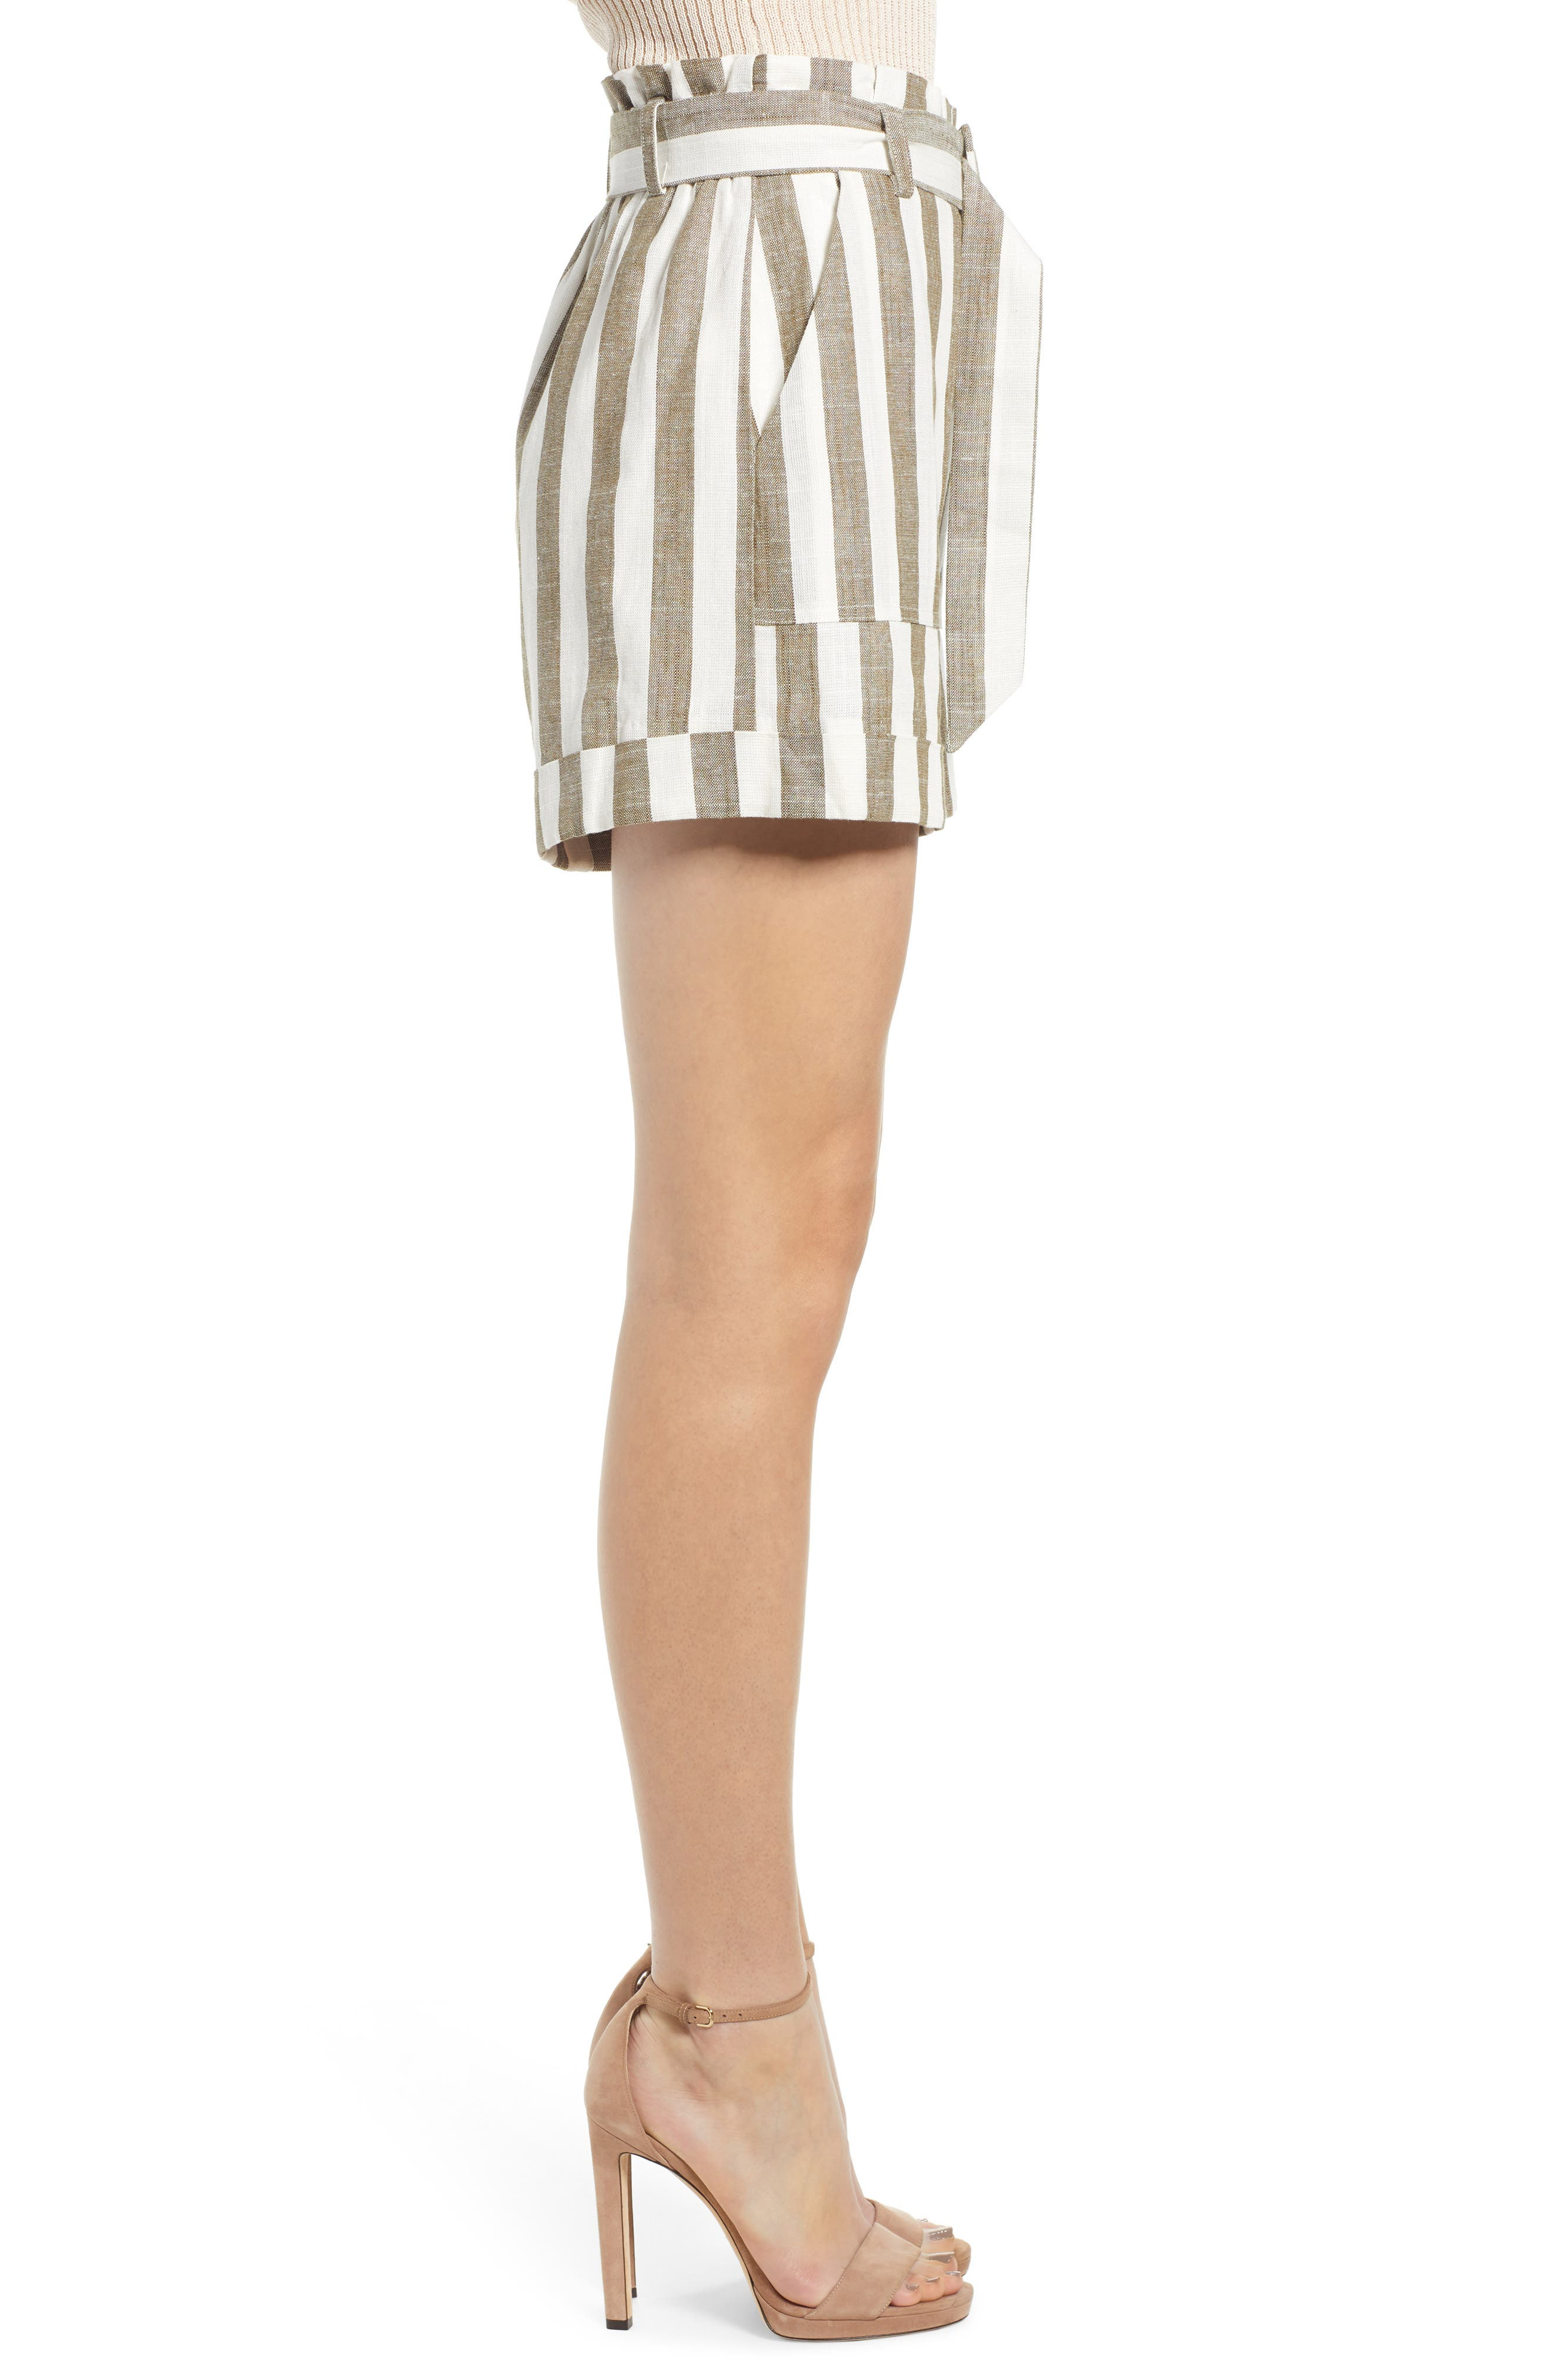 CHRISELLE LIM COLLECTION, Chriselle Lim Cherie Shorts, Alternate thumbnail 3, color, OLIVE STRIPE